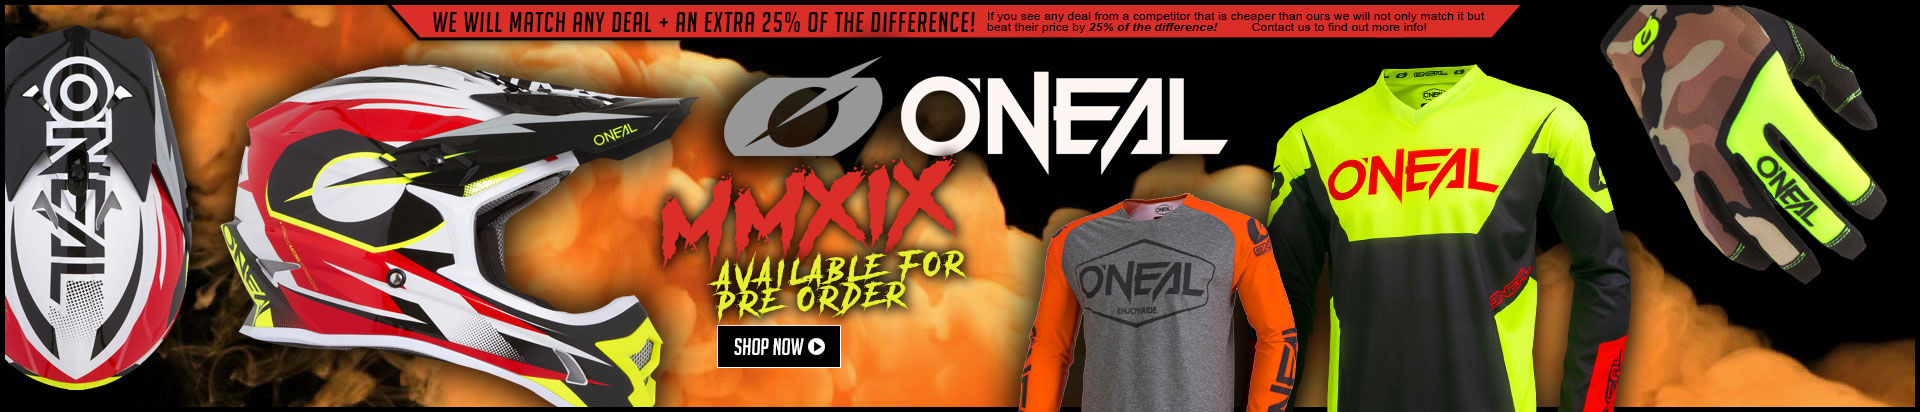 Oneal Pre Order